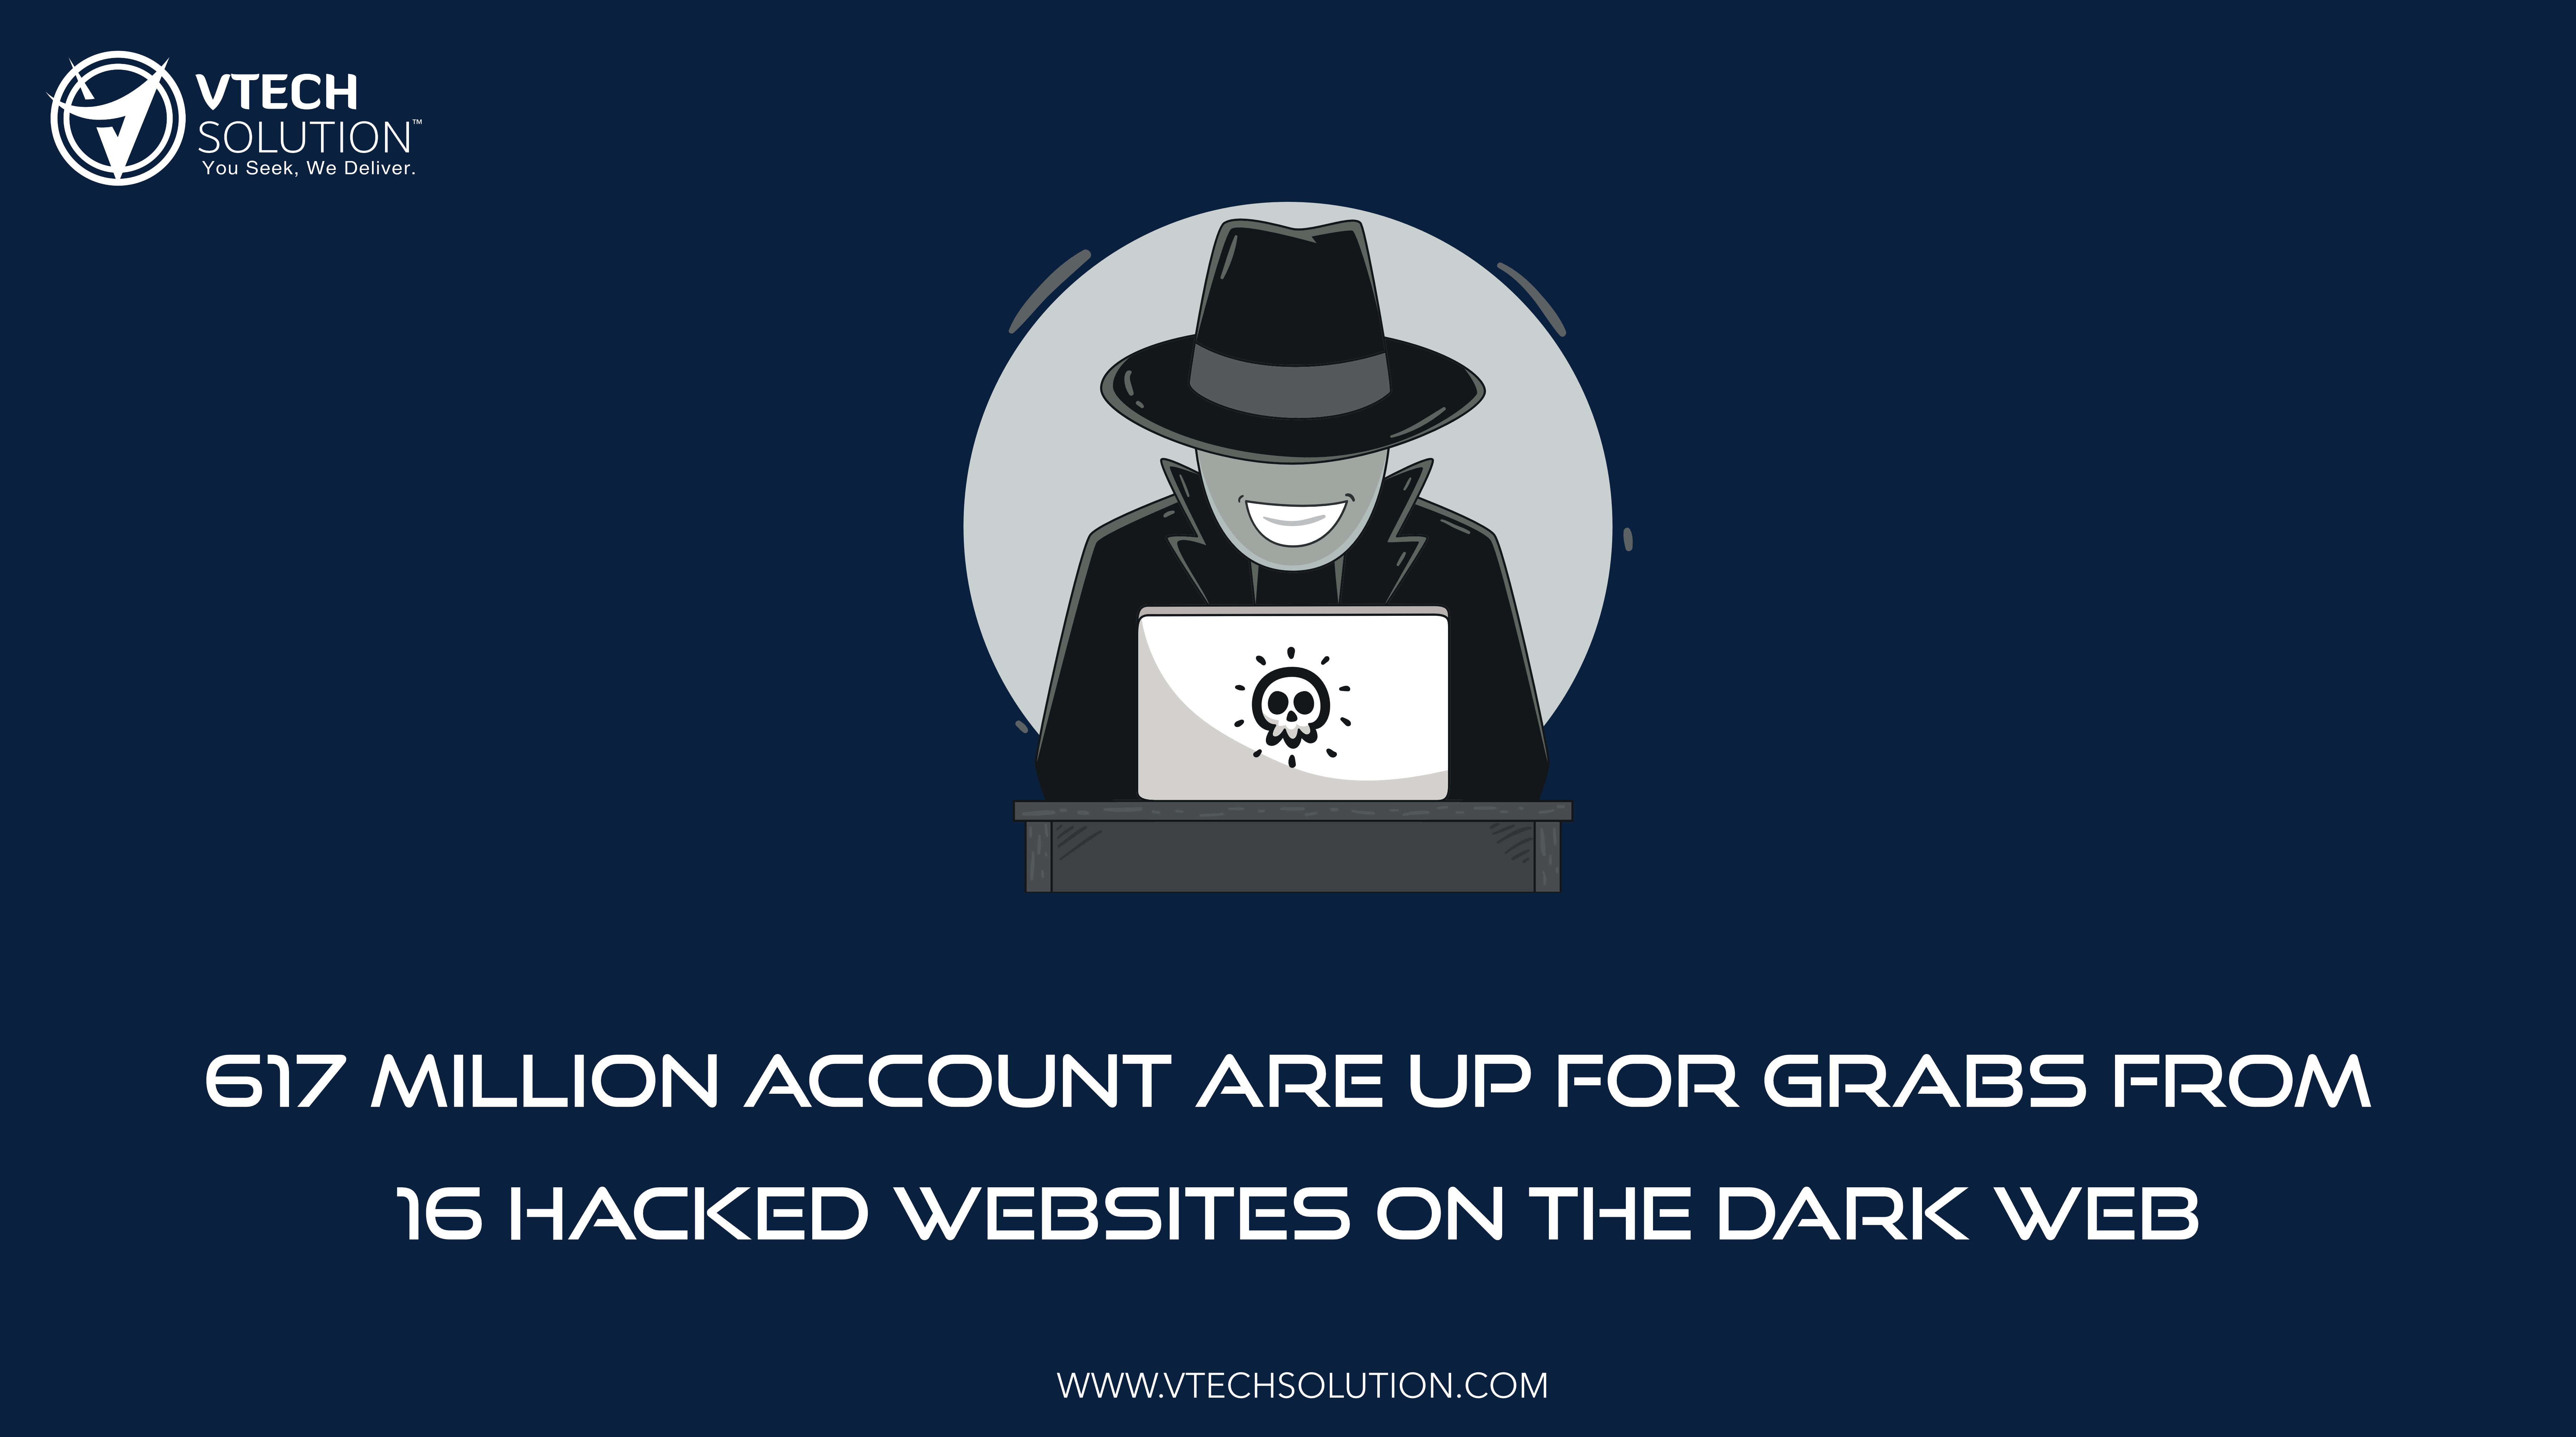 617 Million Account Are Up for Grabs from 16 Hacked Websites On the